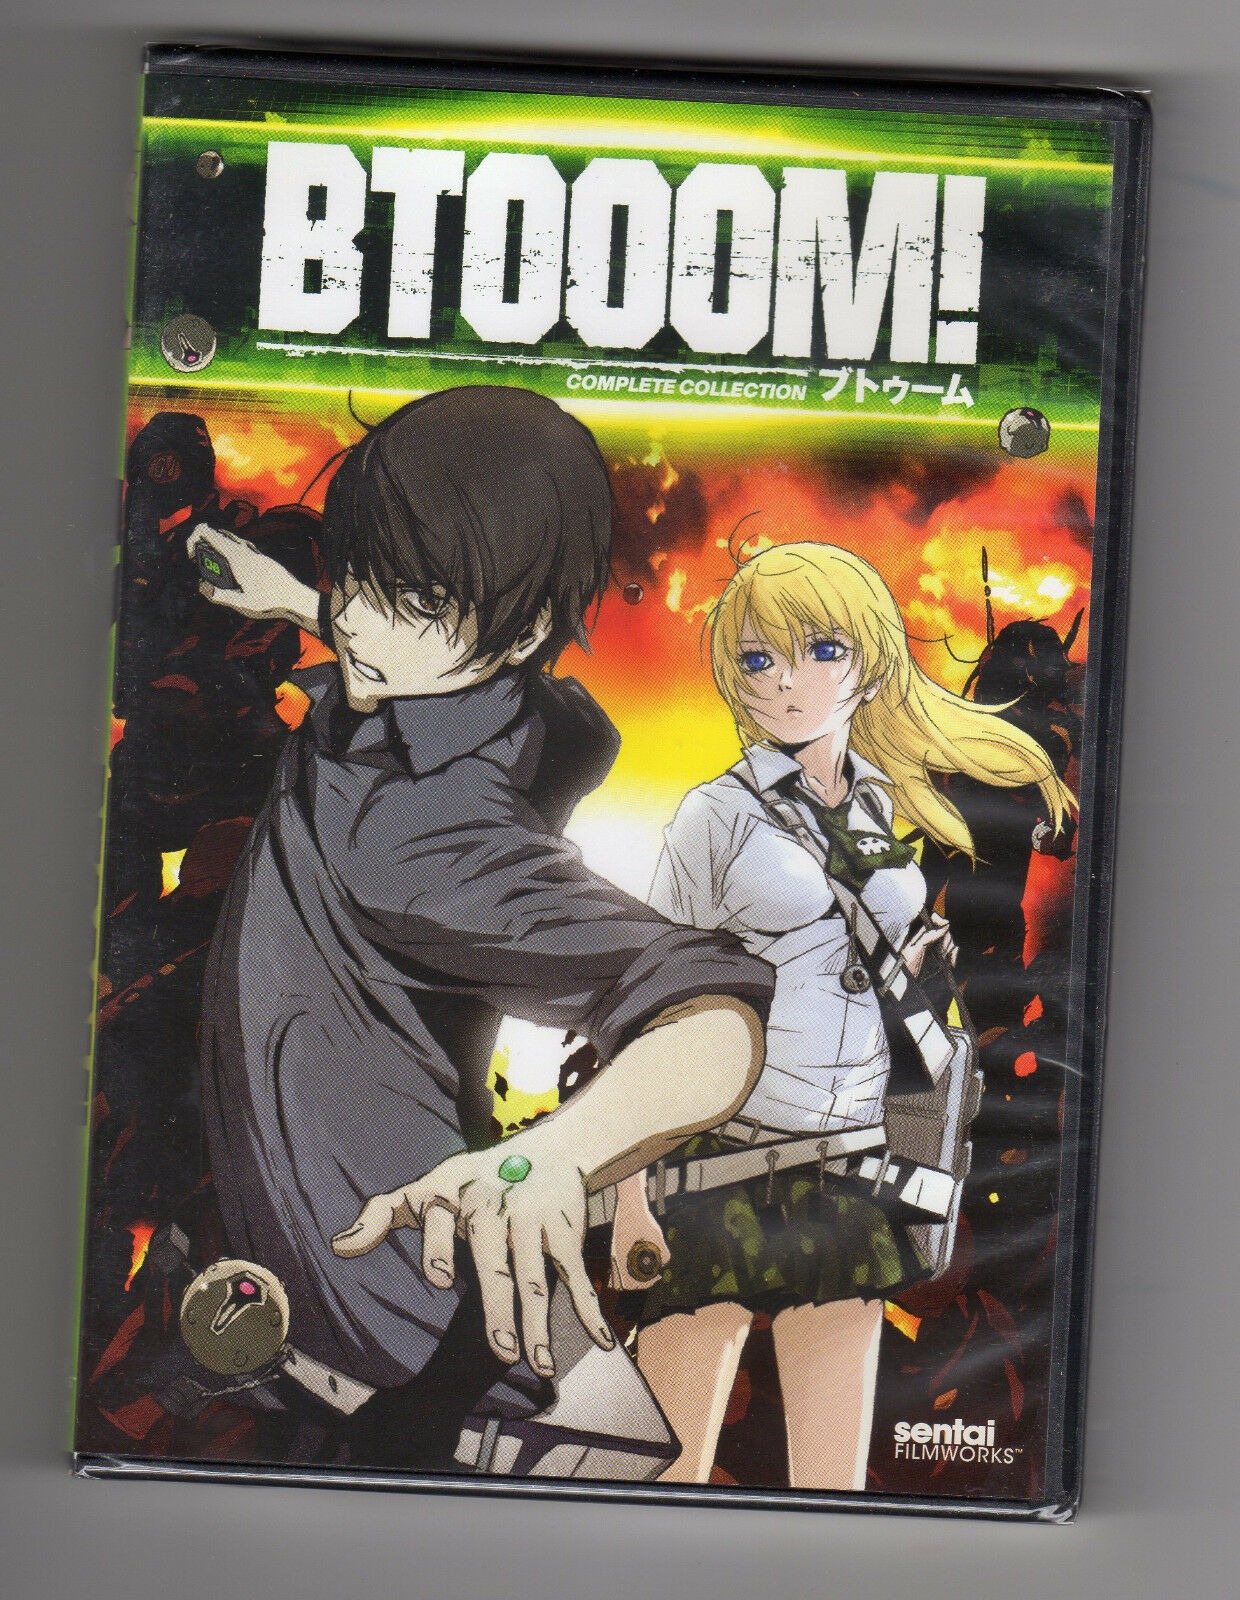 btooom complete collection dvd